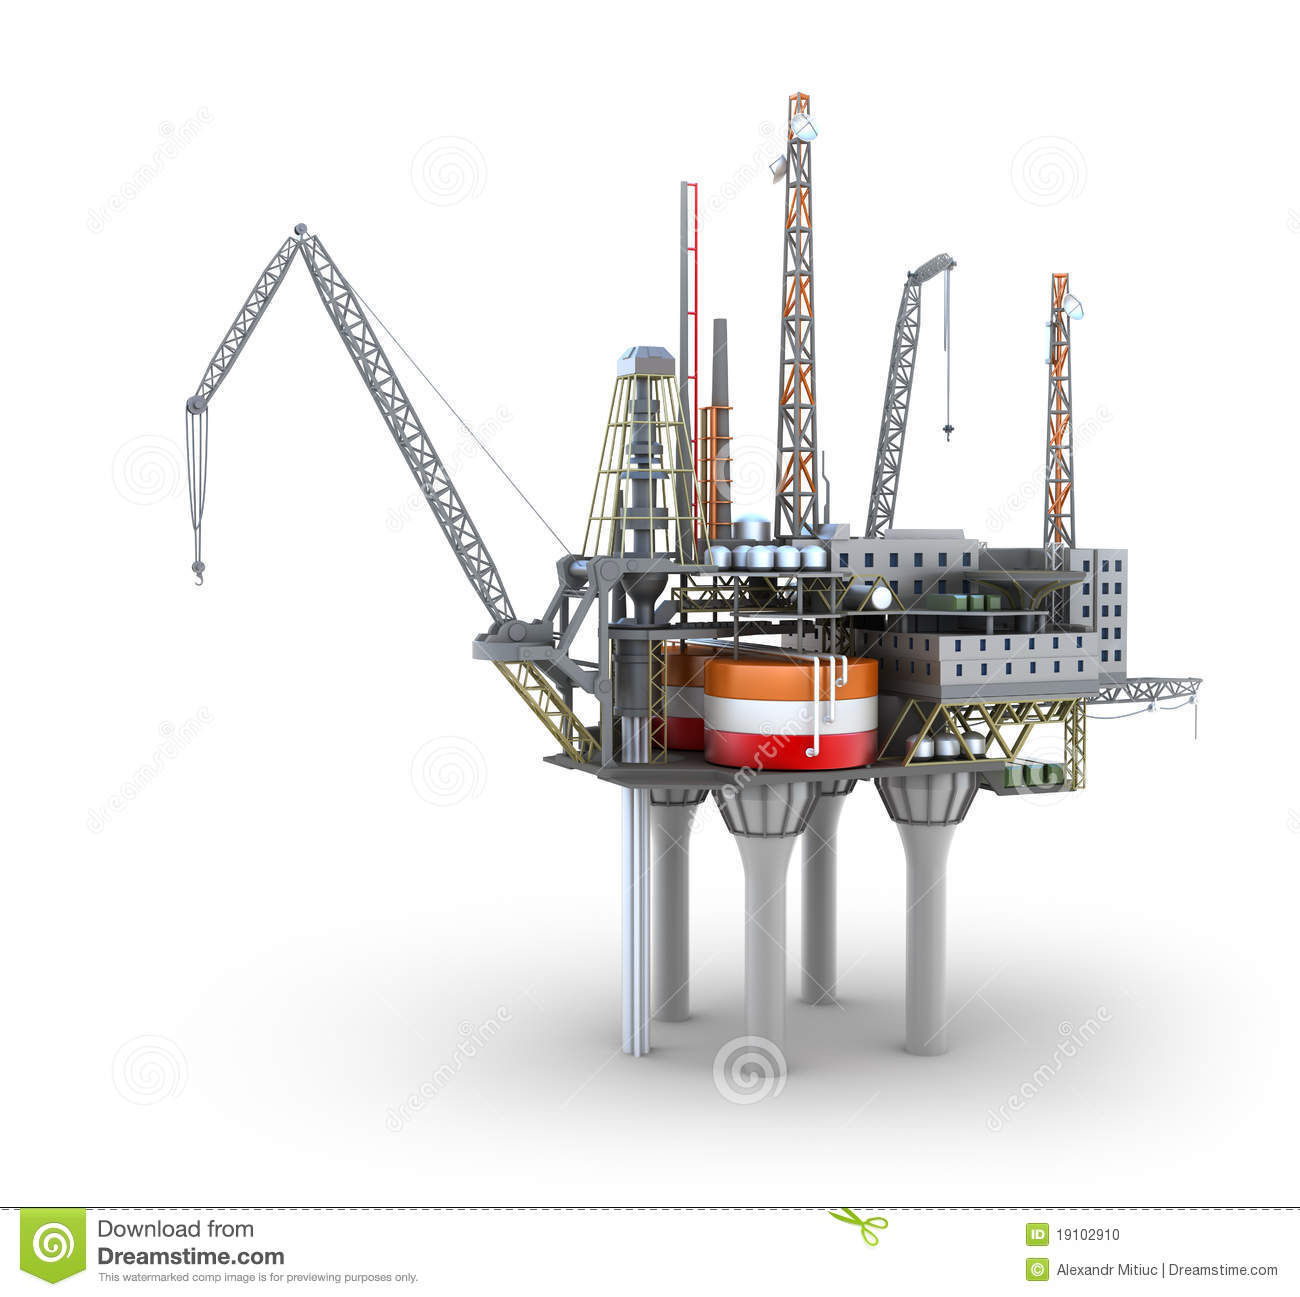 z rig diagram valeo wiper motor wiring drilling offshore platform stock illustration